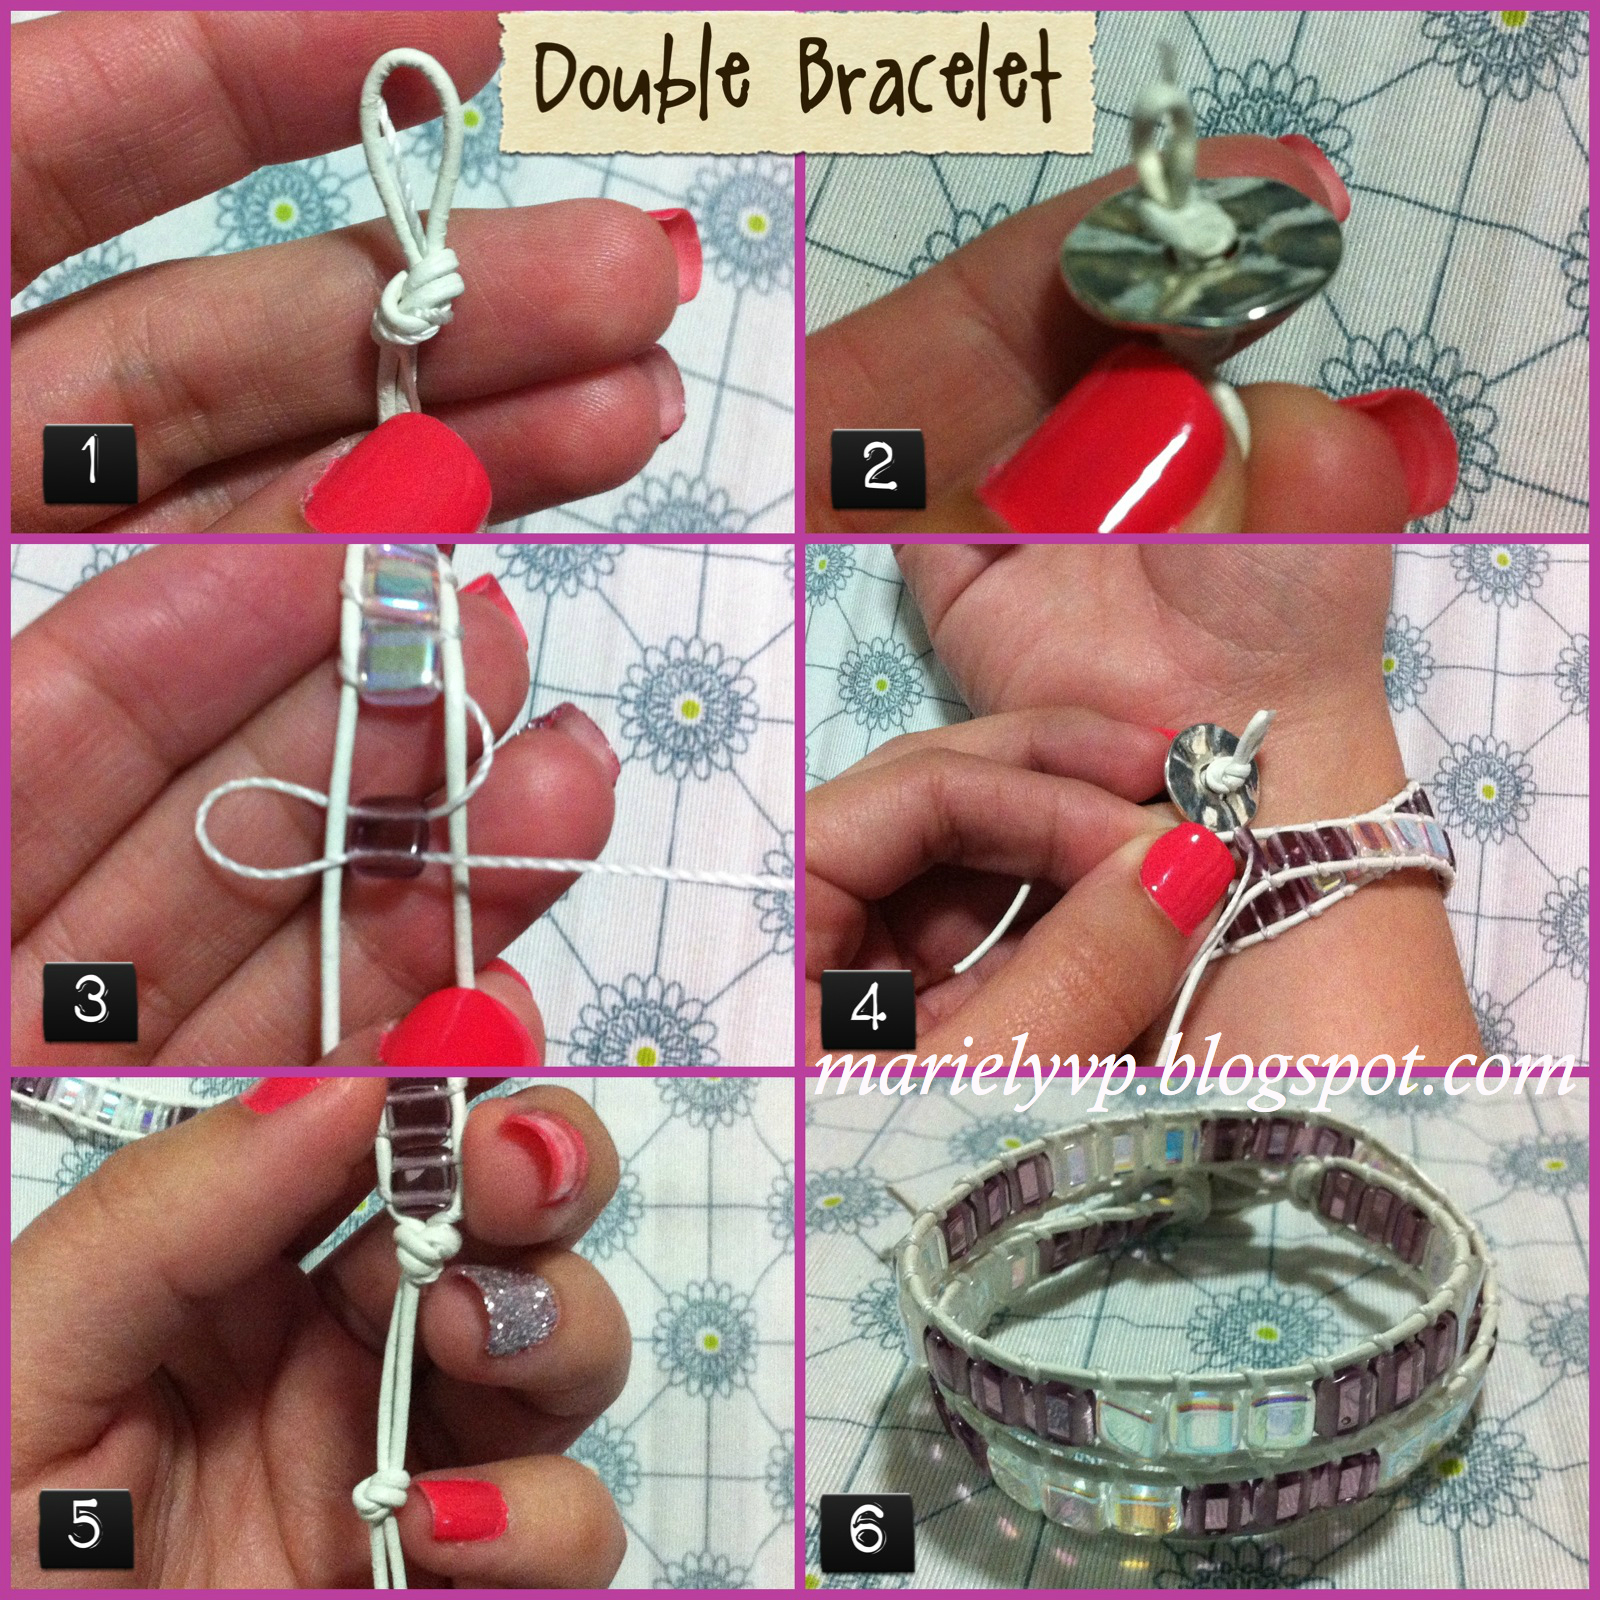 design if sensmi bracelet entry guide world band